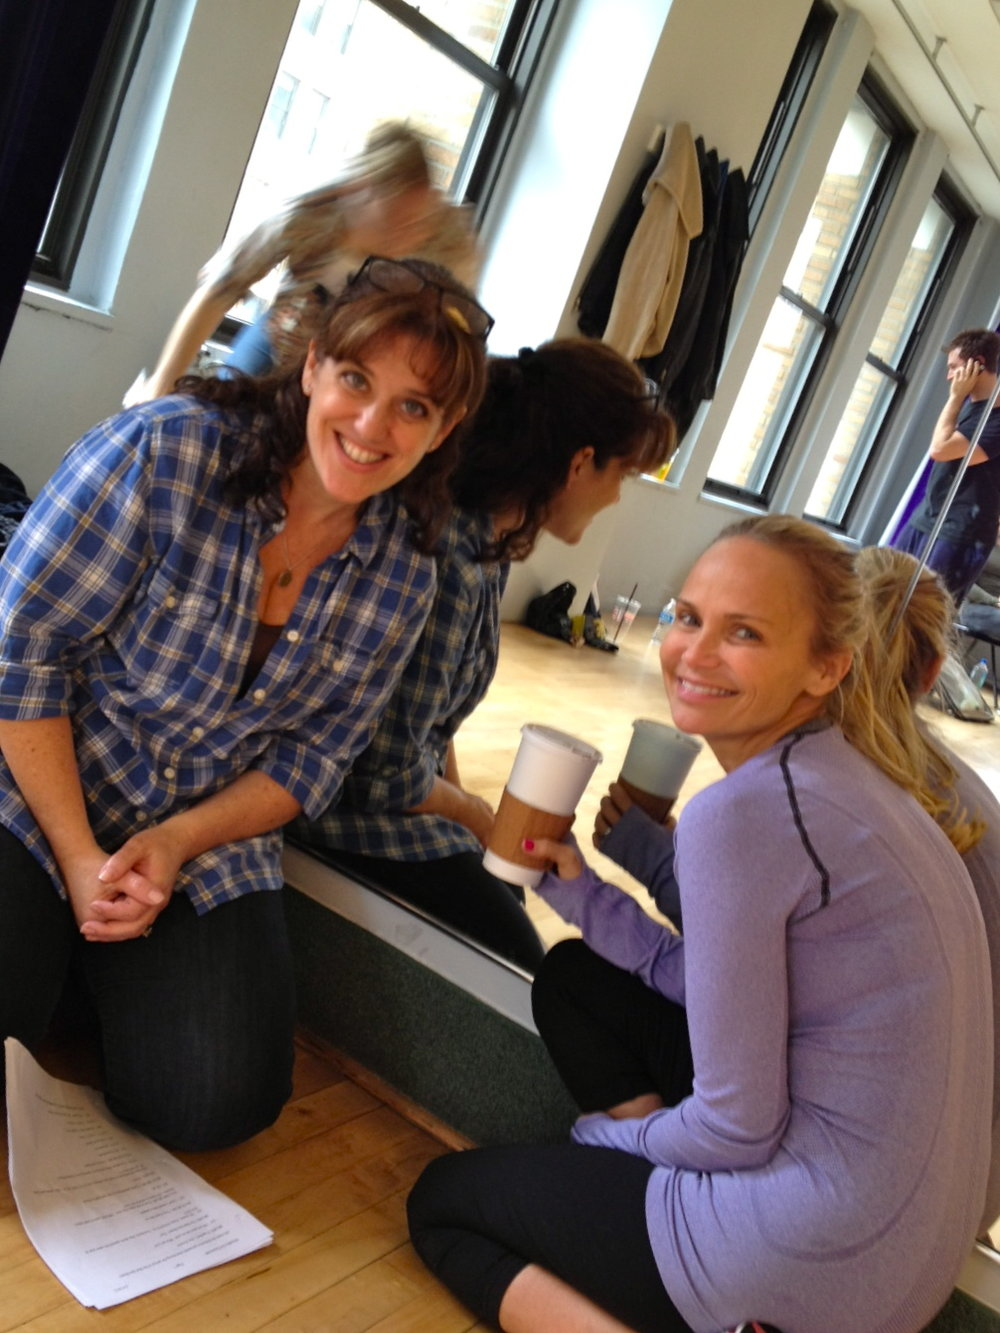 Me with Kristin Chenoweth while working on writing her concert material.